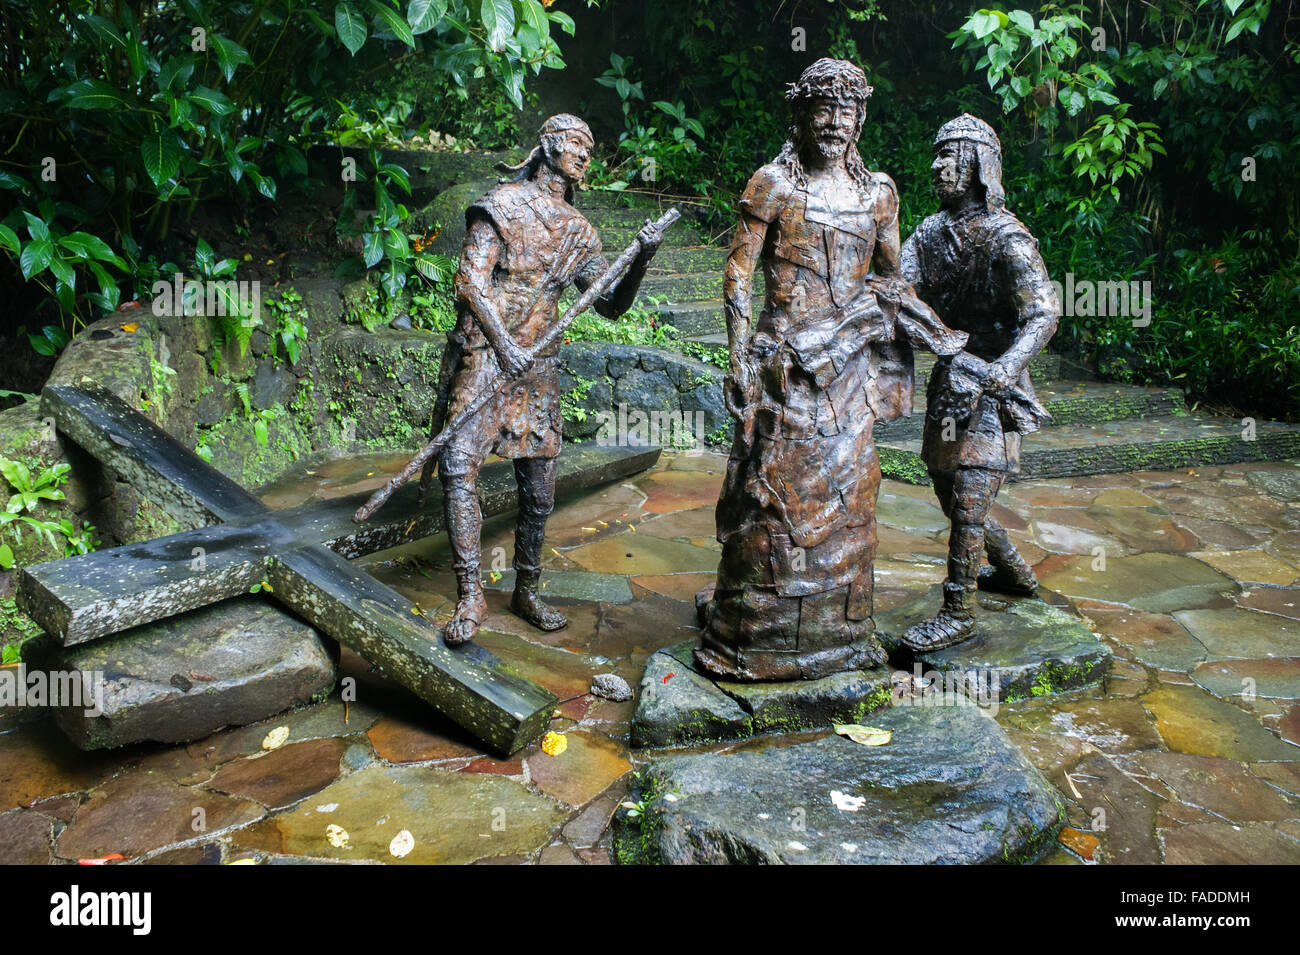 Stations of the Cross statues in Tomohon, North Sulawesi, Indonesia. - Stock Image